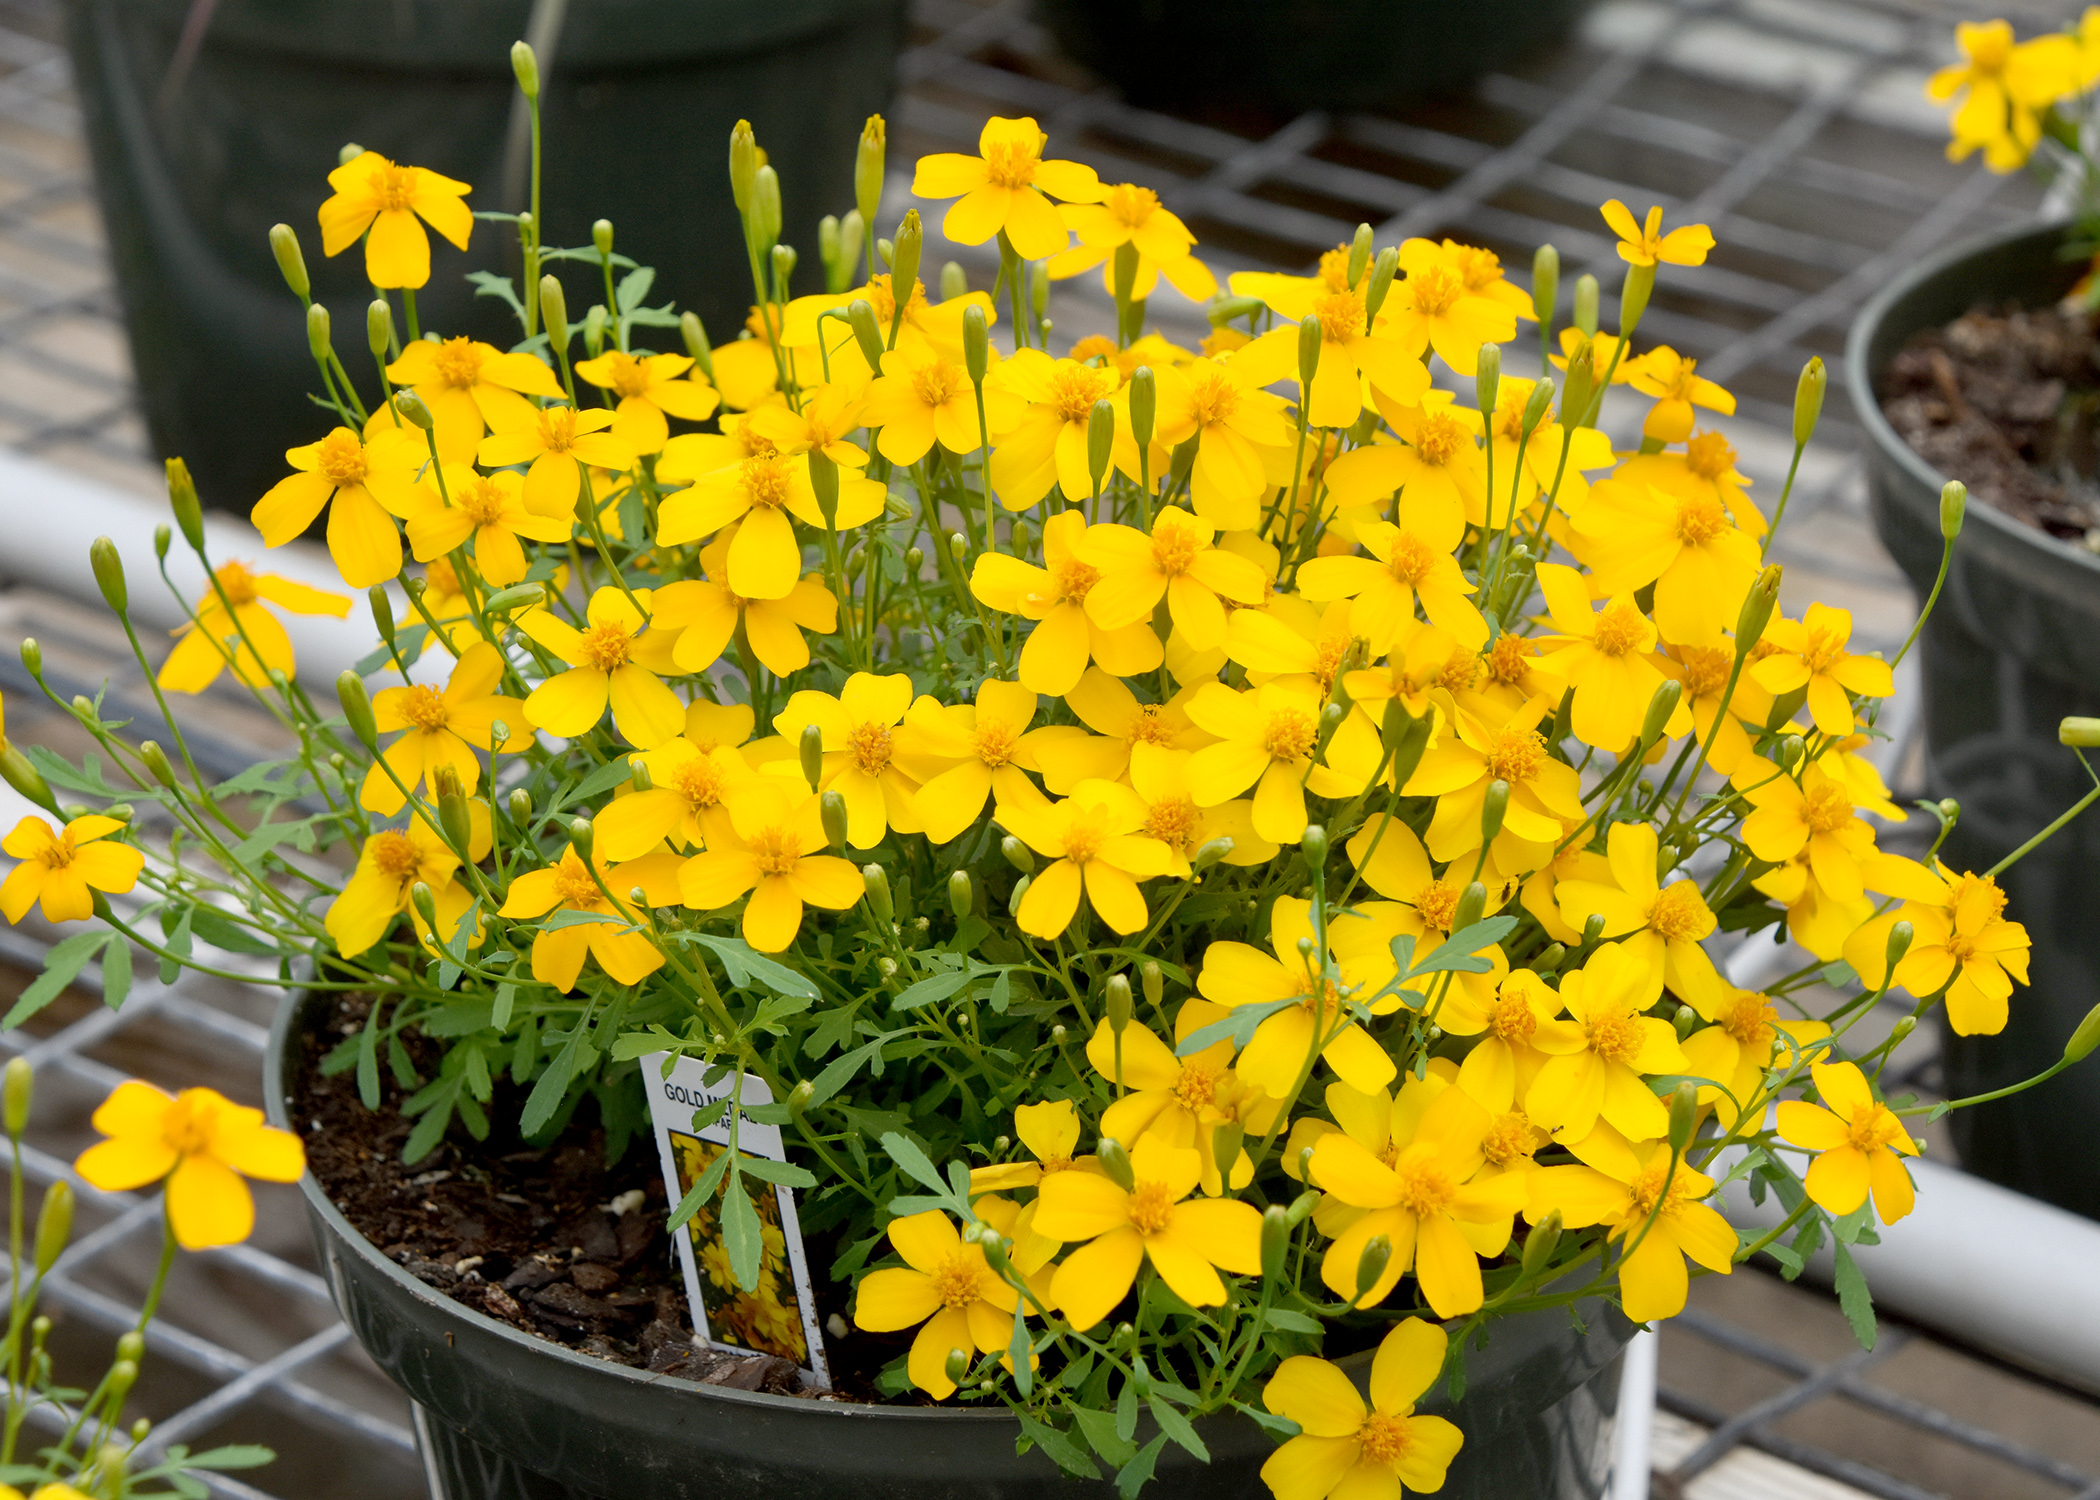 The Mexican mint marigold, also called Mexican tarragon, is part of the widely diverse family of marigolds. (Photo by MSU Extension/Gary Bachman)